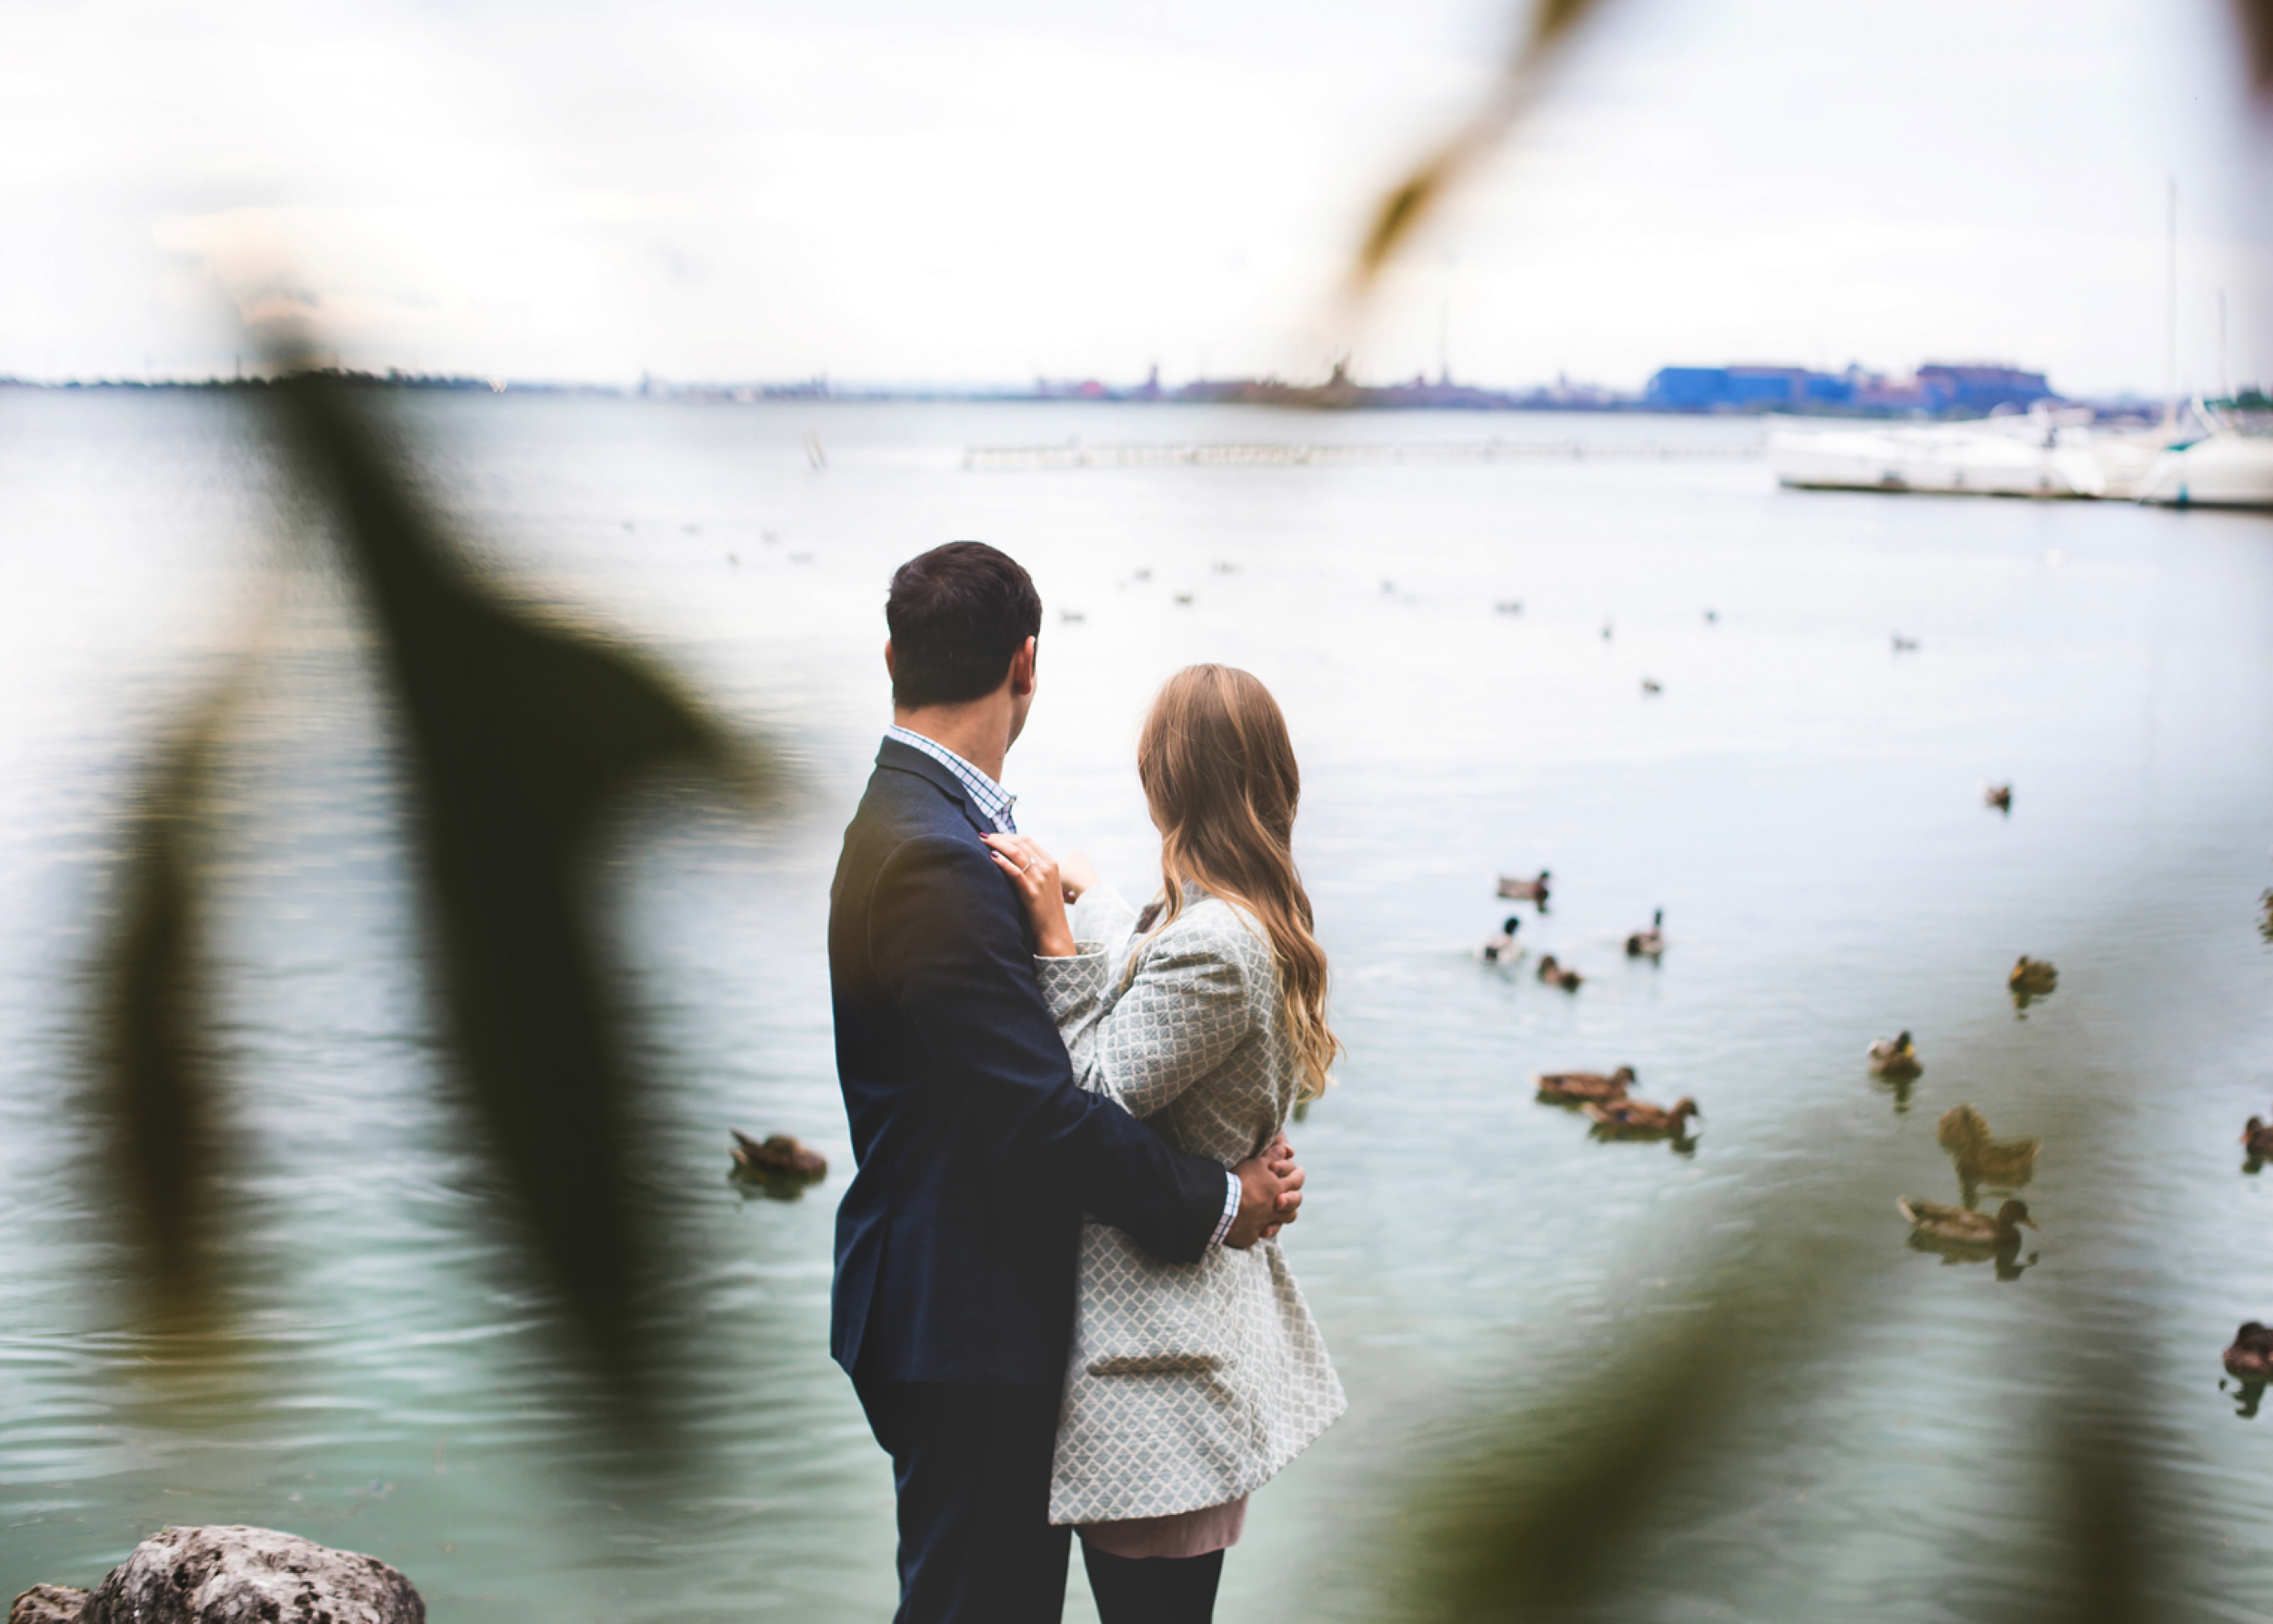 Engagement-Session-Hamilton-Burlington-Oakville-Niagara-Toronto-Wedding-Photographer-Engaged-Photography-Waterfront-Engaged-Golden-Hour-Moments-by-Lauren-Photo-Image-5.png